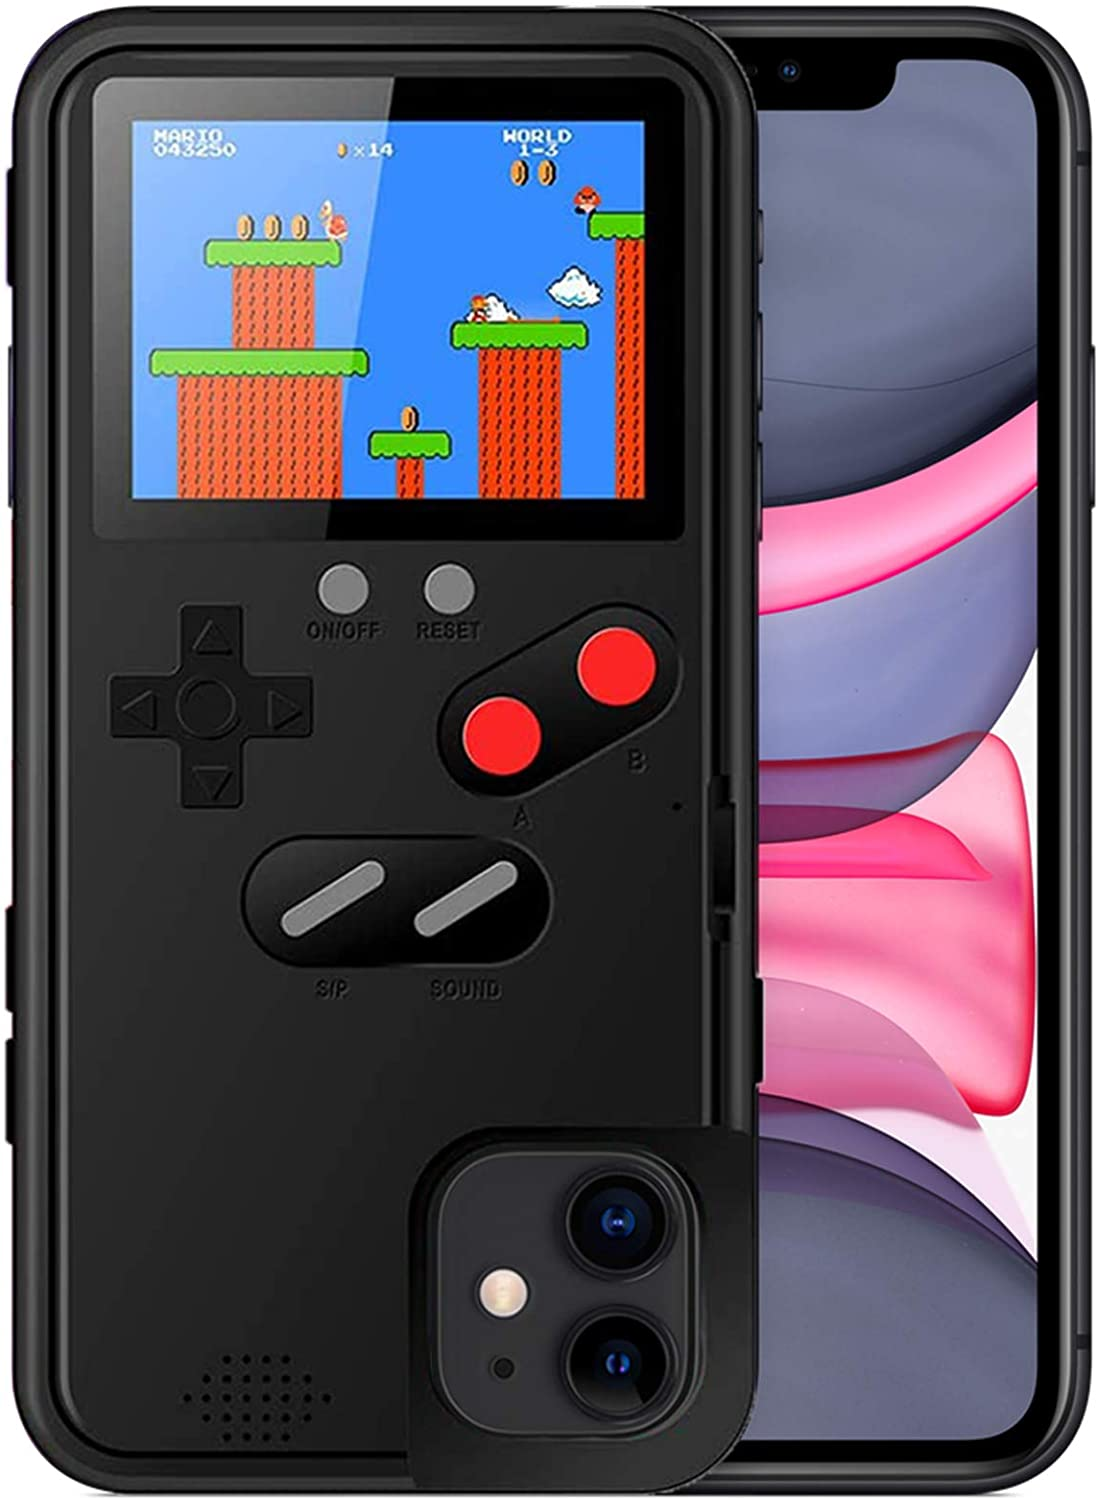 New color JILLICK Gameboy Phone Case for iPhone Game Retro Playable Free shipping New XR 3D